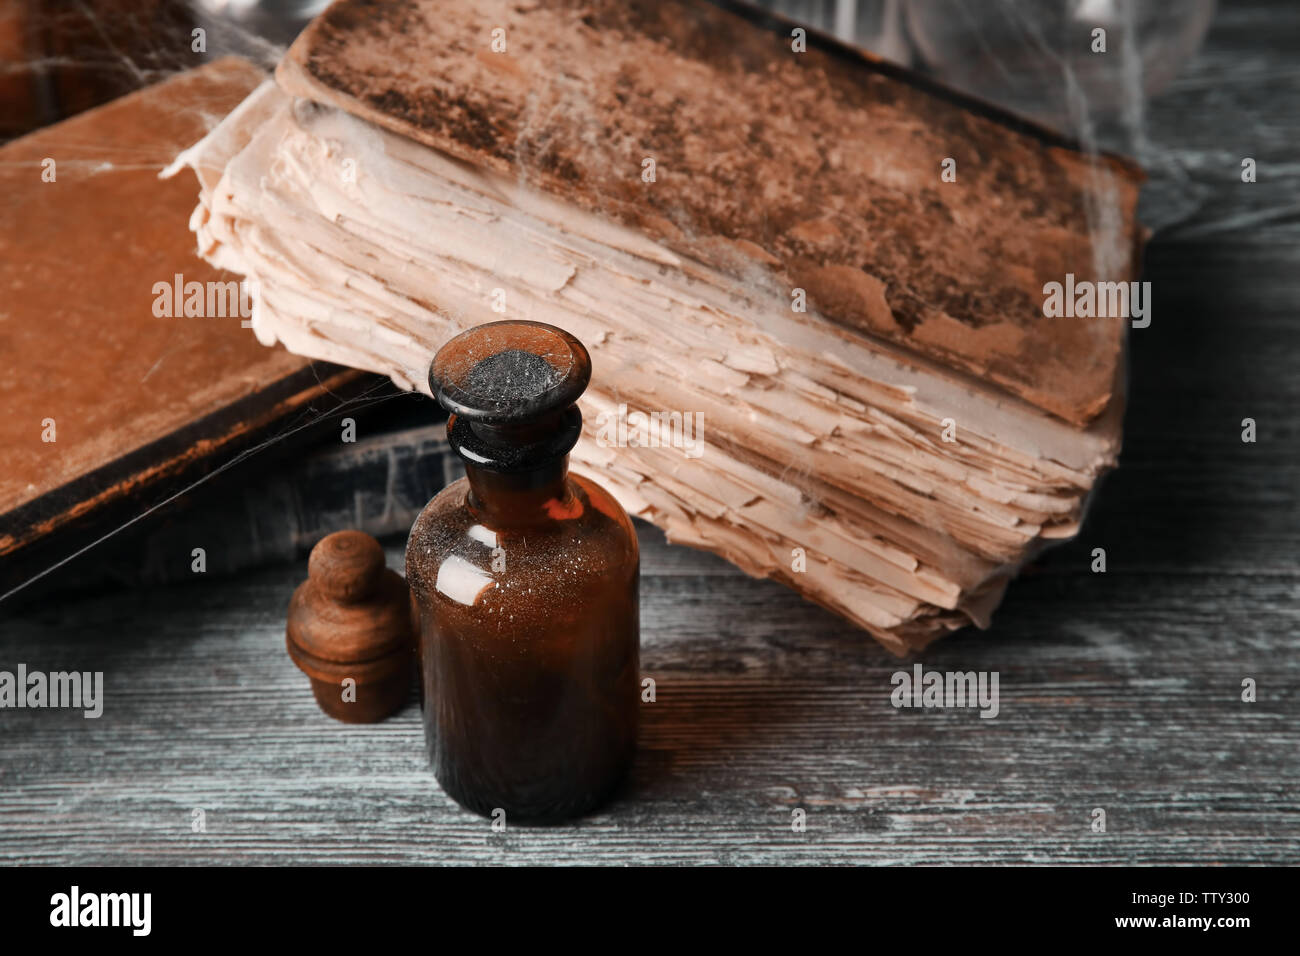 Vintage glass bottle with old books on wooden background, closeup - Stock Image